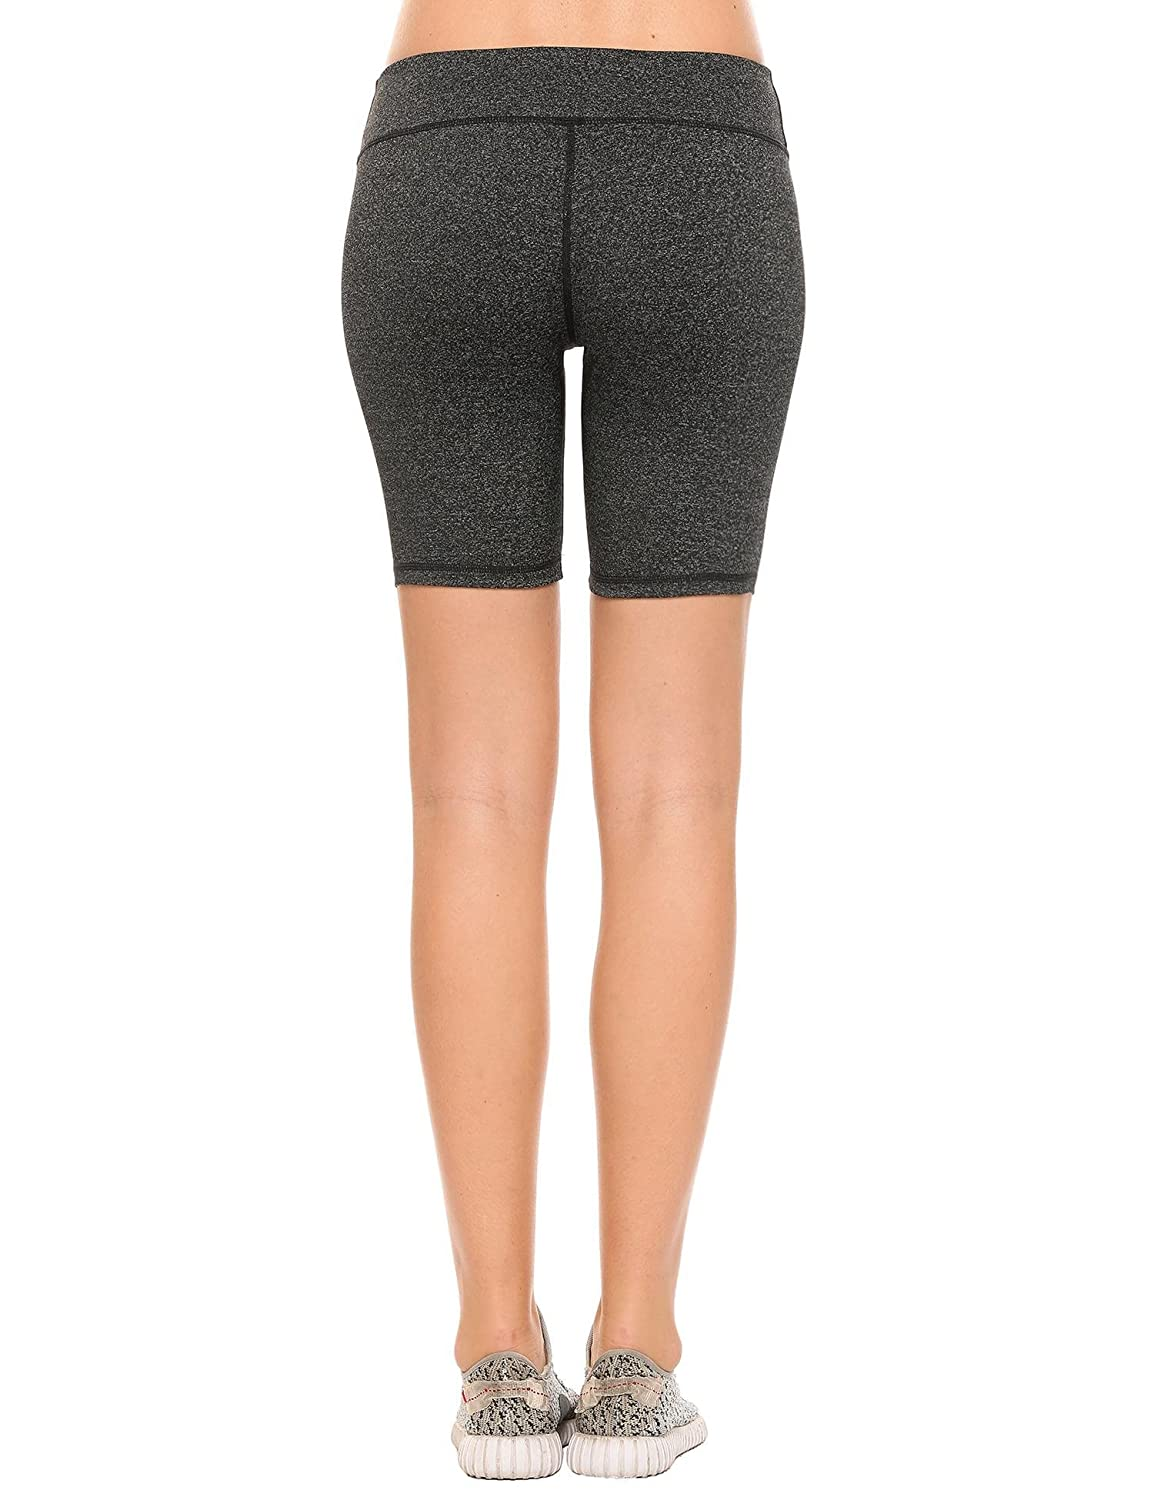 3bb31635ae4d7 Meflying Best Yoga Pants hot Women in Yoga Pants Too Revealing Buy Designer  Summer Shorts Online Shops Store Shop Shorts at Amazon Women's Clothing  store: